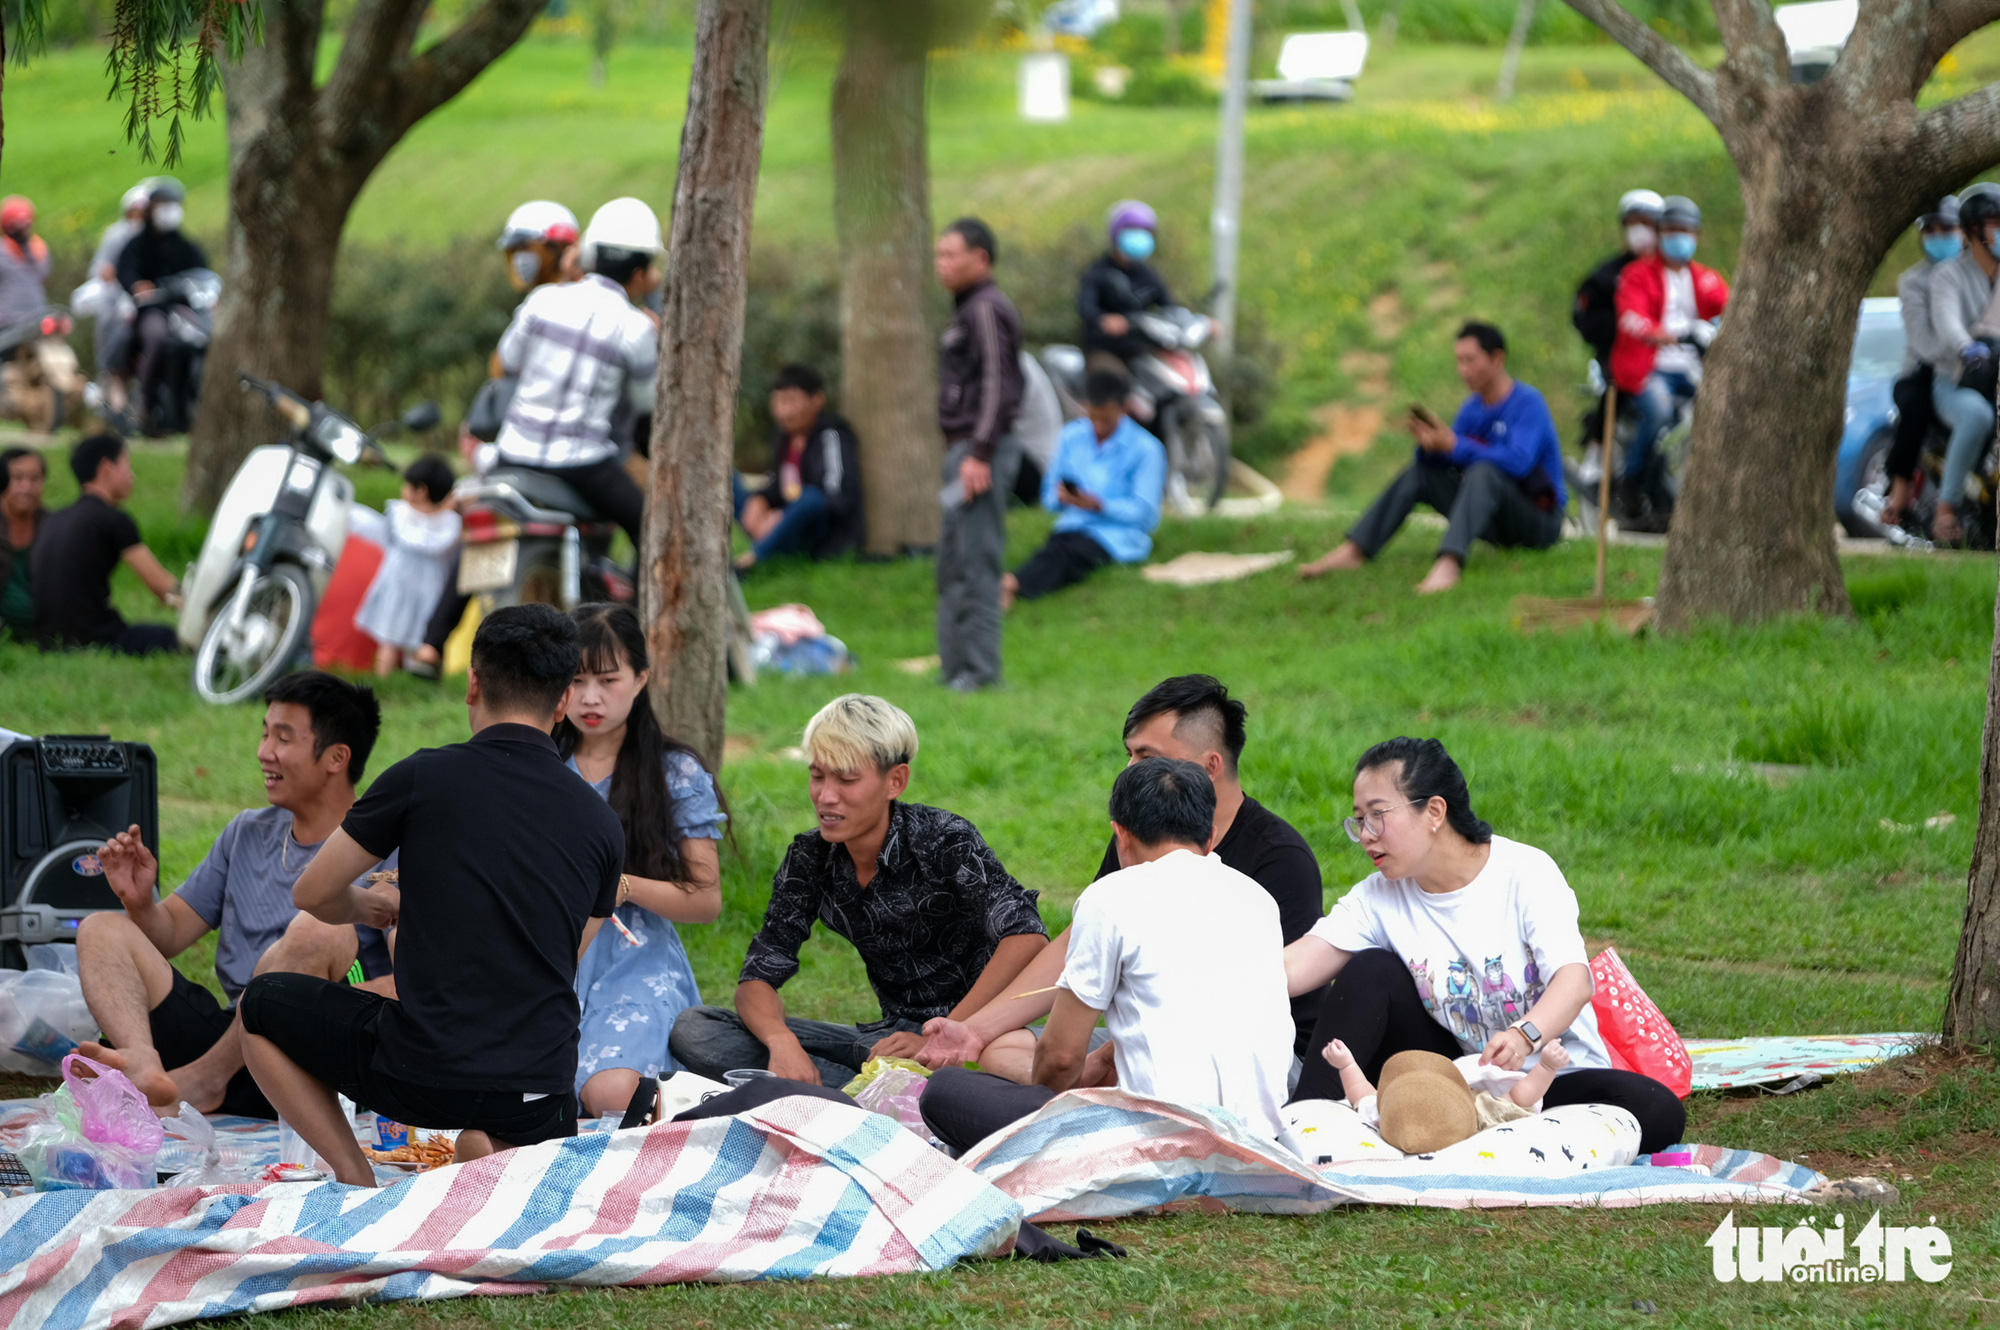 Visitors have a picnic by Xuan Huong Lake in Da Lat City, Vietnam, May 2, 2021. Photo: Duc Tho / Tuoi Tre